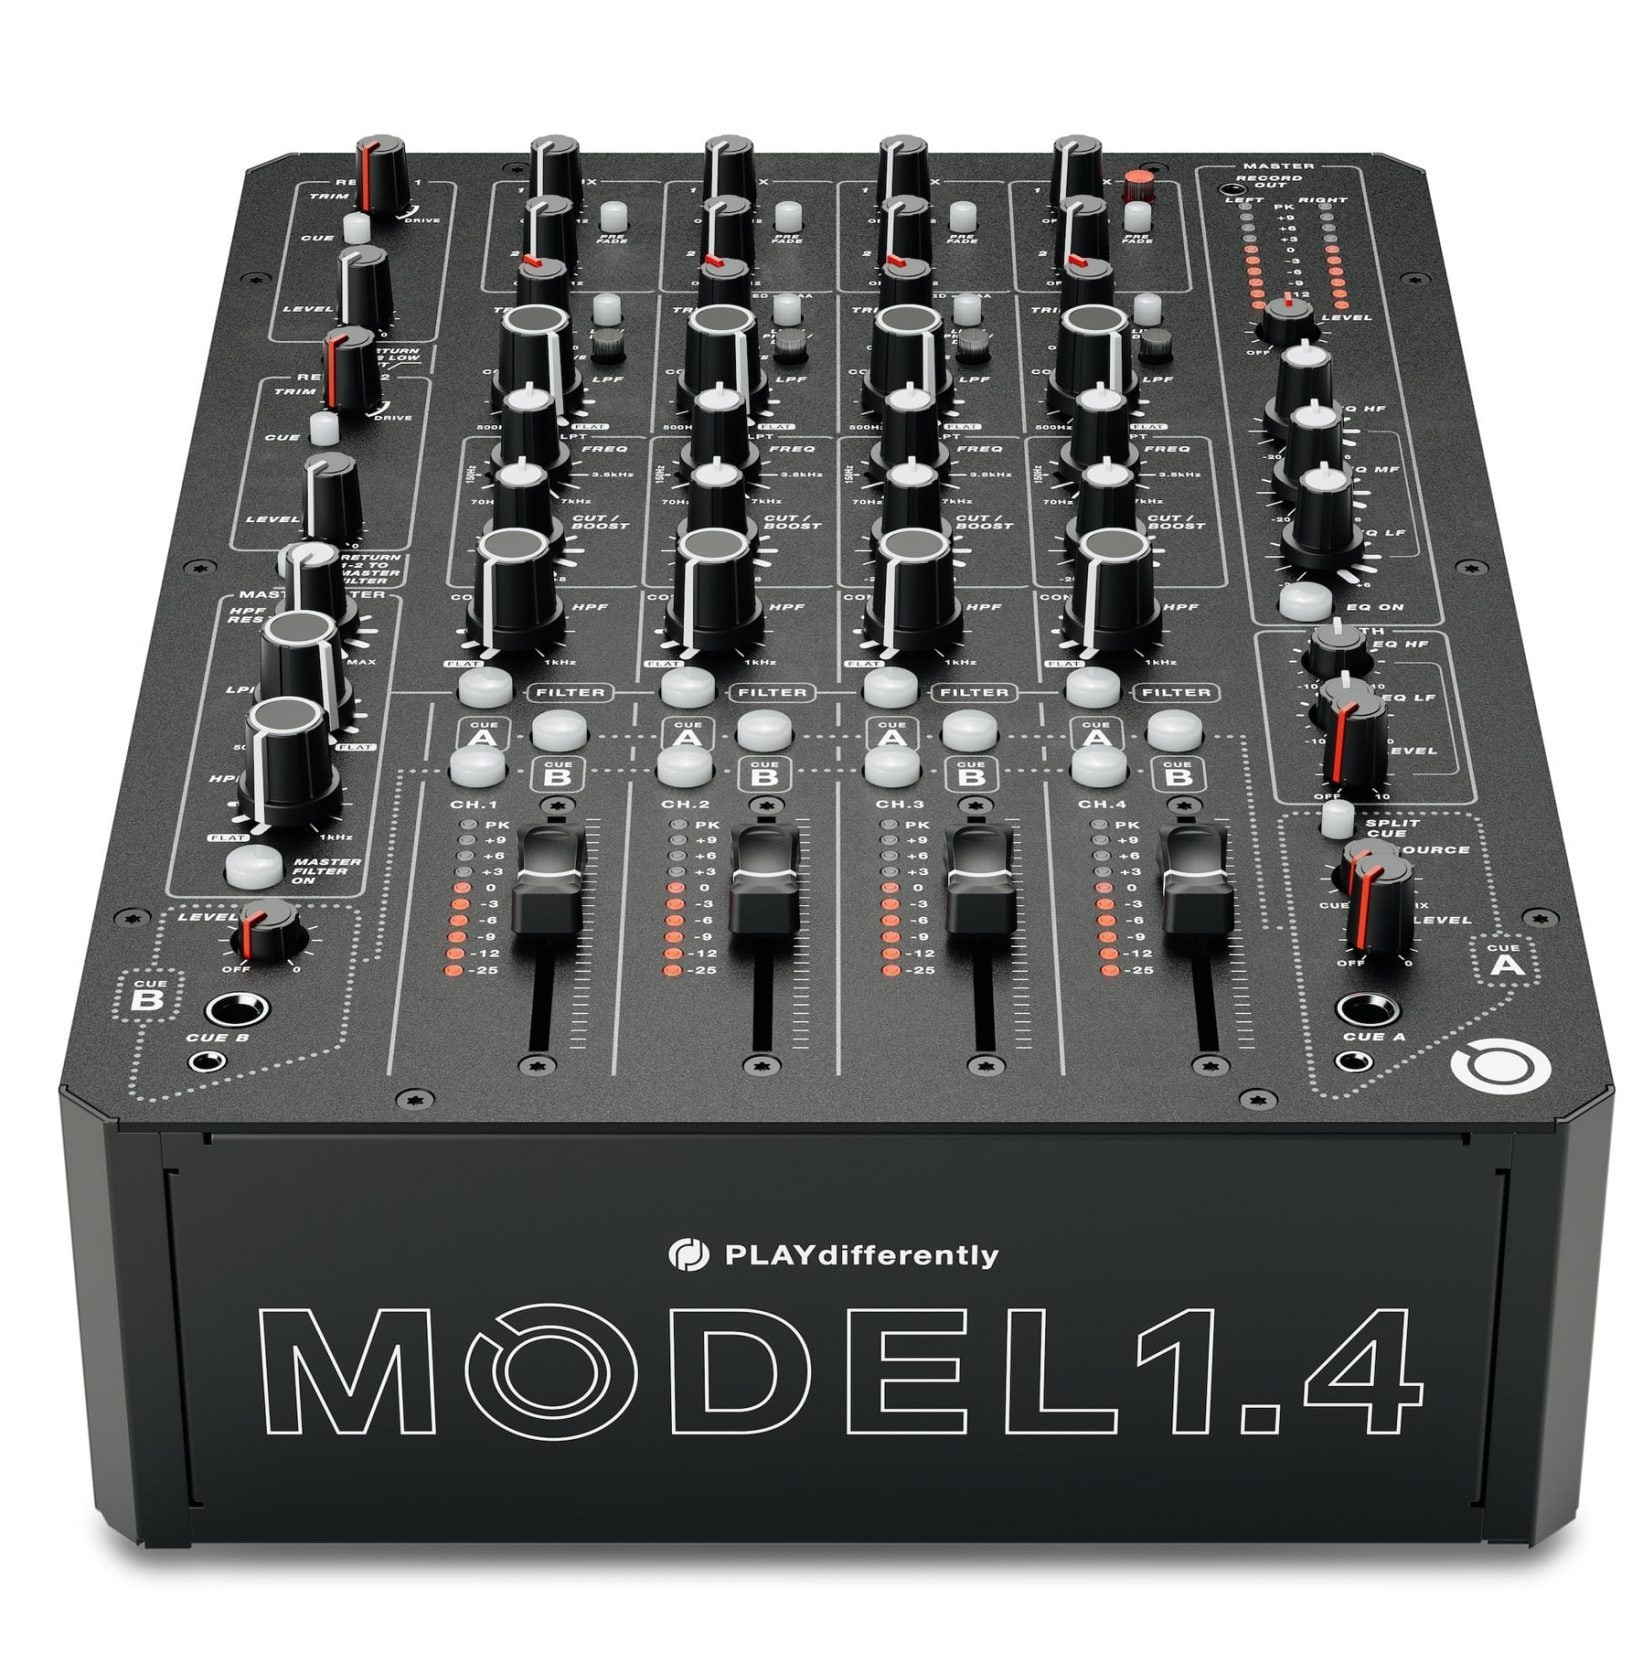 PLAYdifferently Releases MODEL 1.4  - 4-Channel Analogue DJ Mixer 3